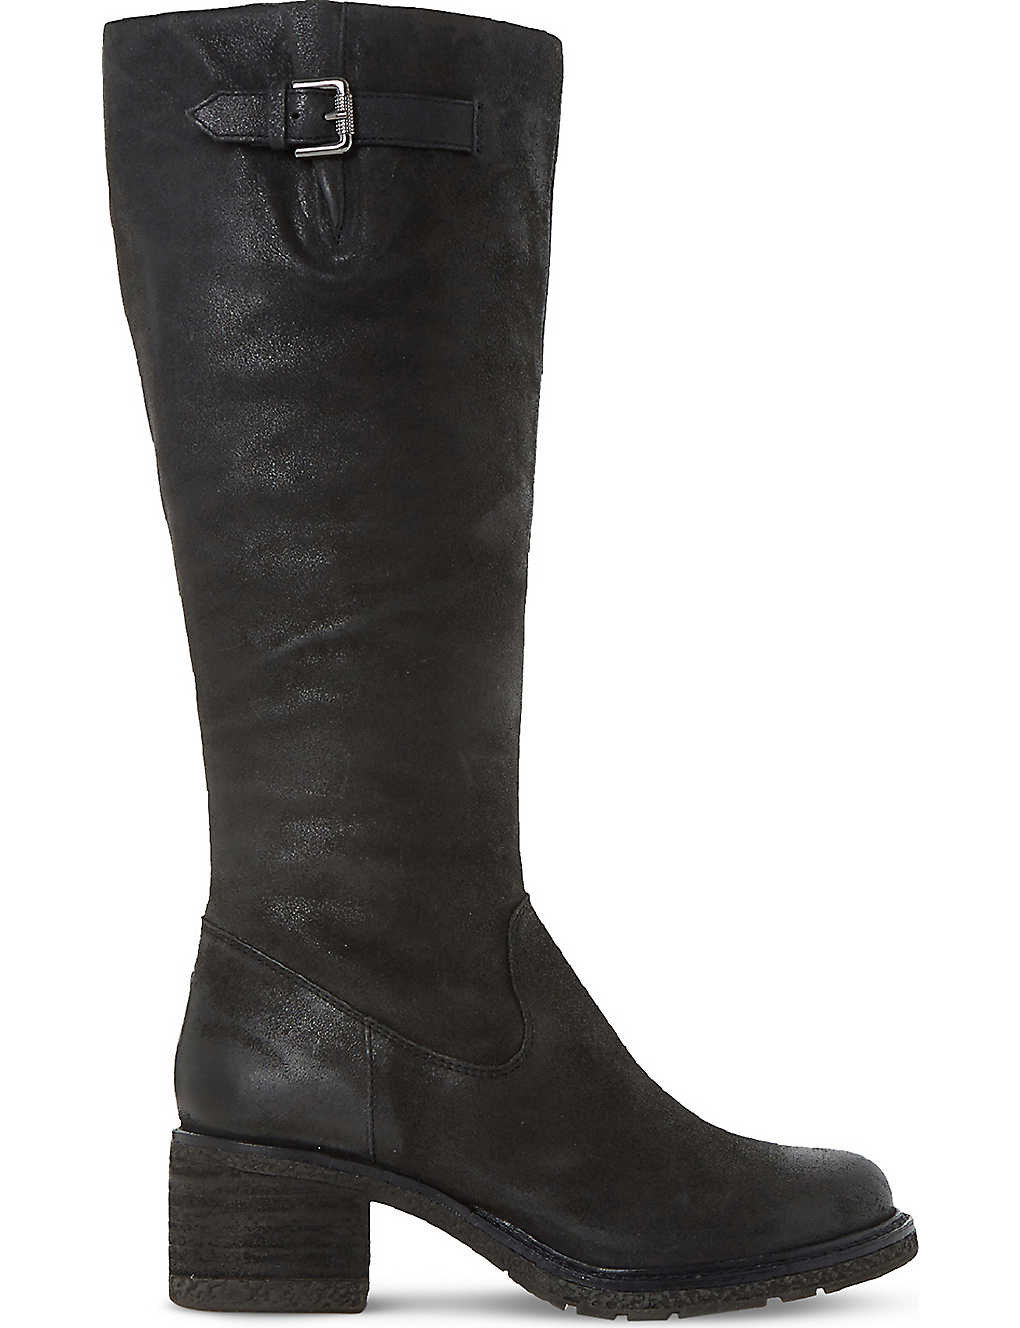 Discount Dune Black-Leather Tedmund Knee-High Distressed Leather Boots for Women On Sale